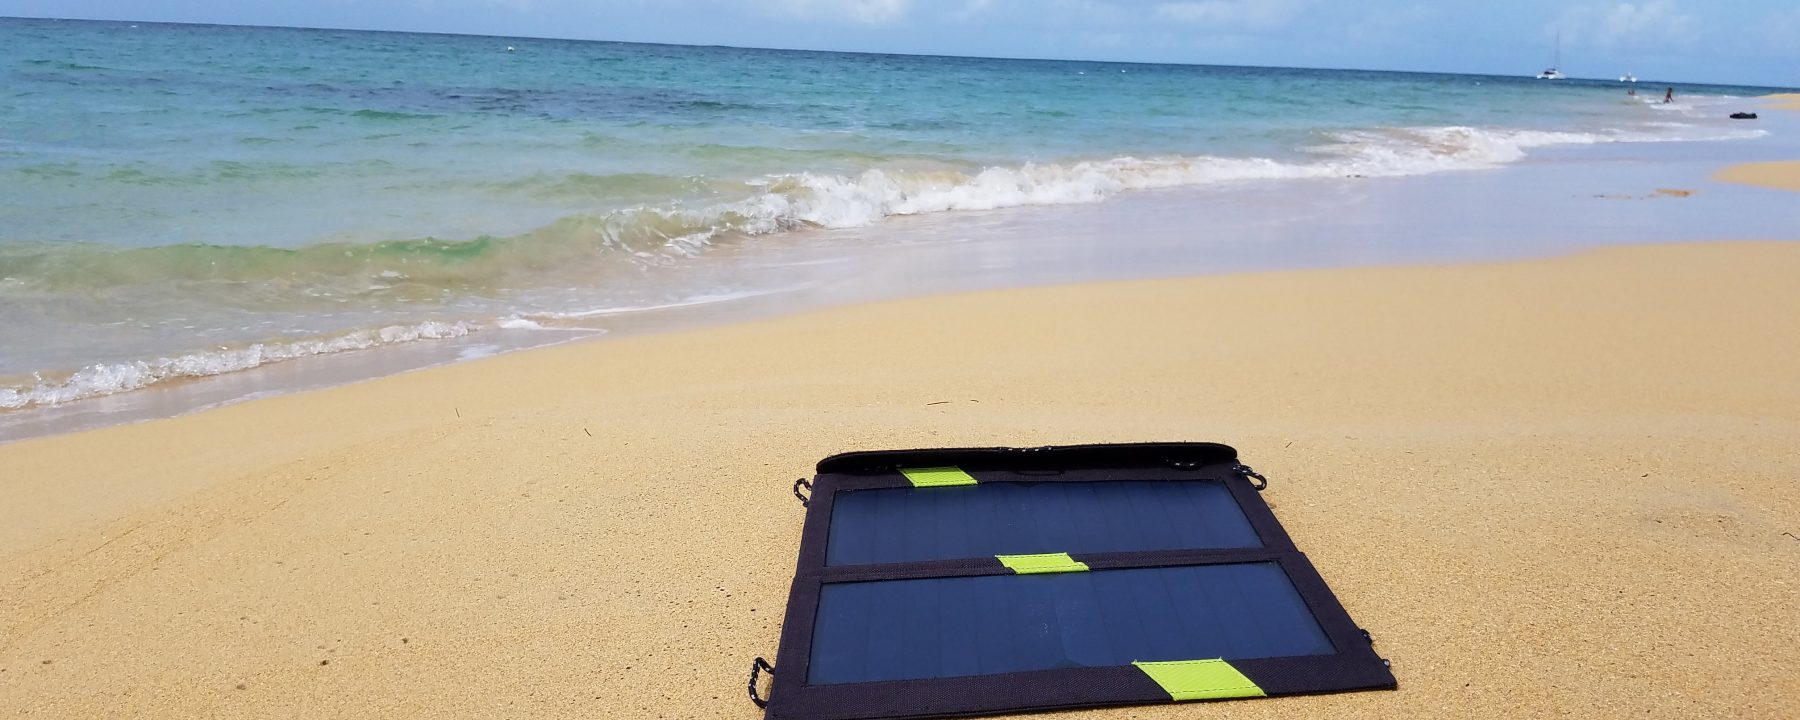 XDXDragon 攜帶式太陽能手機USB充電器 (14W) Cellphone Solar Charger at the beach at Dominican Republic